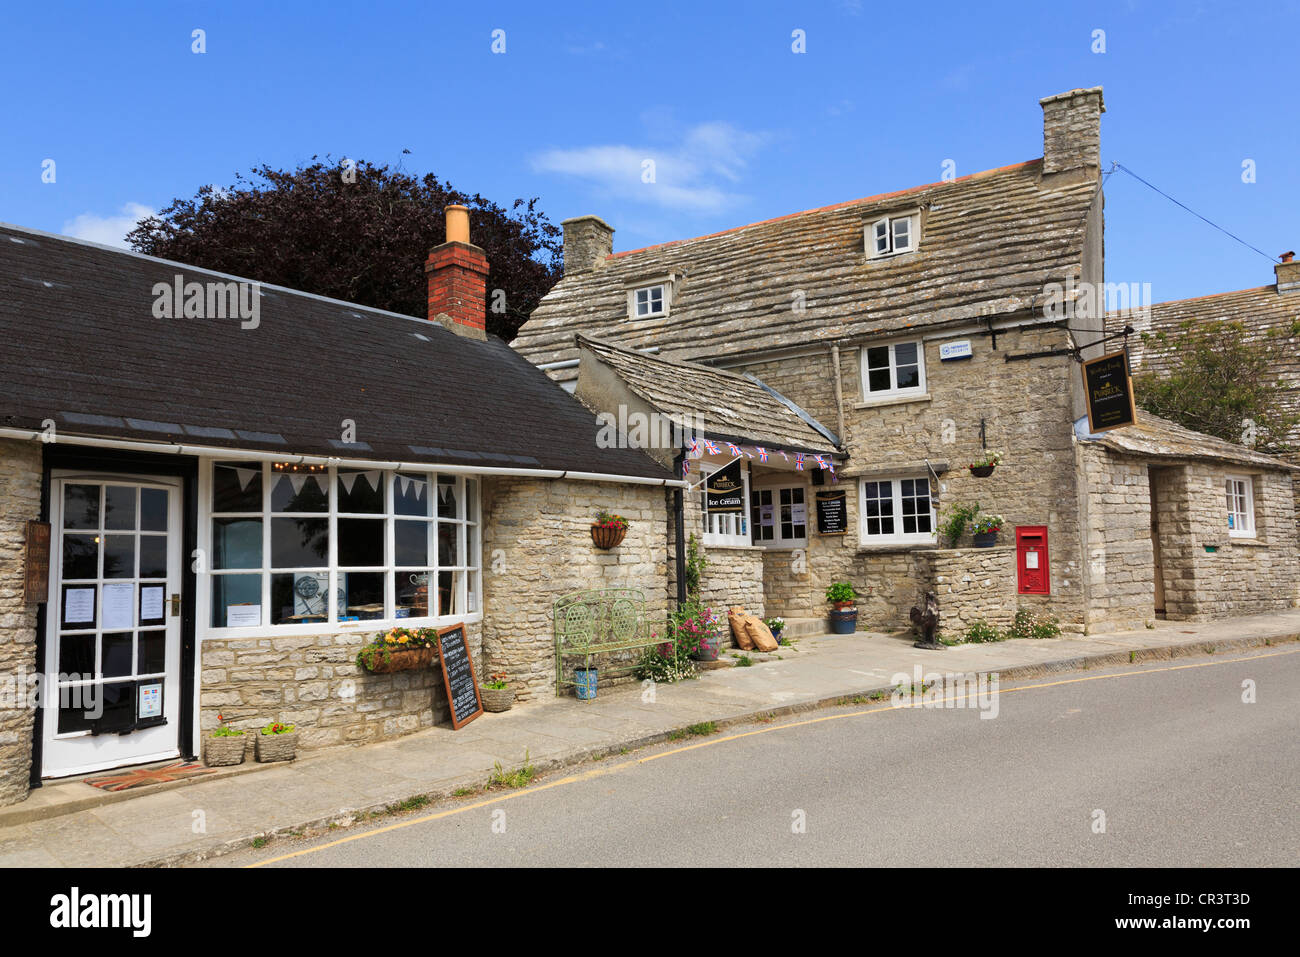 Purbeck ice cream shop and tea rooms in historic old village of Worth Matravers Isle of Purbeck Dorset England UK - Stock Image